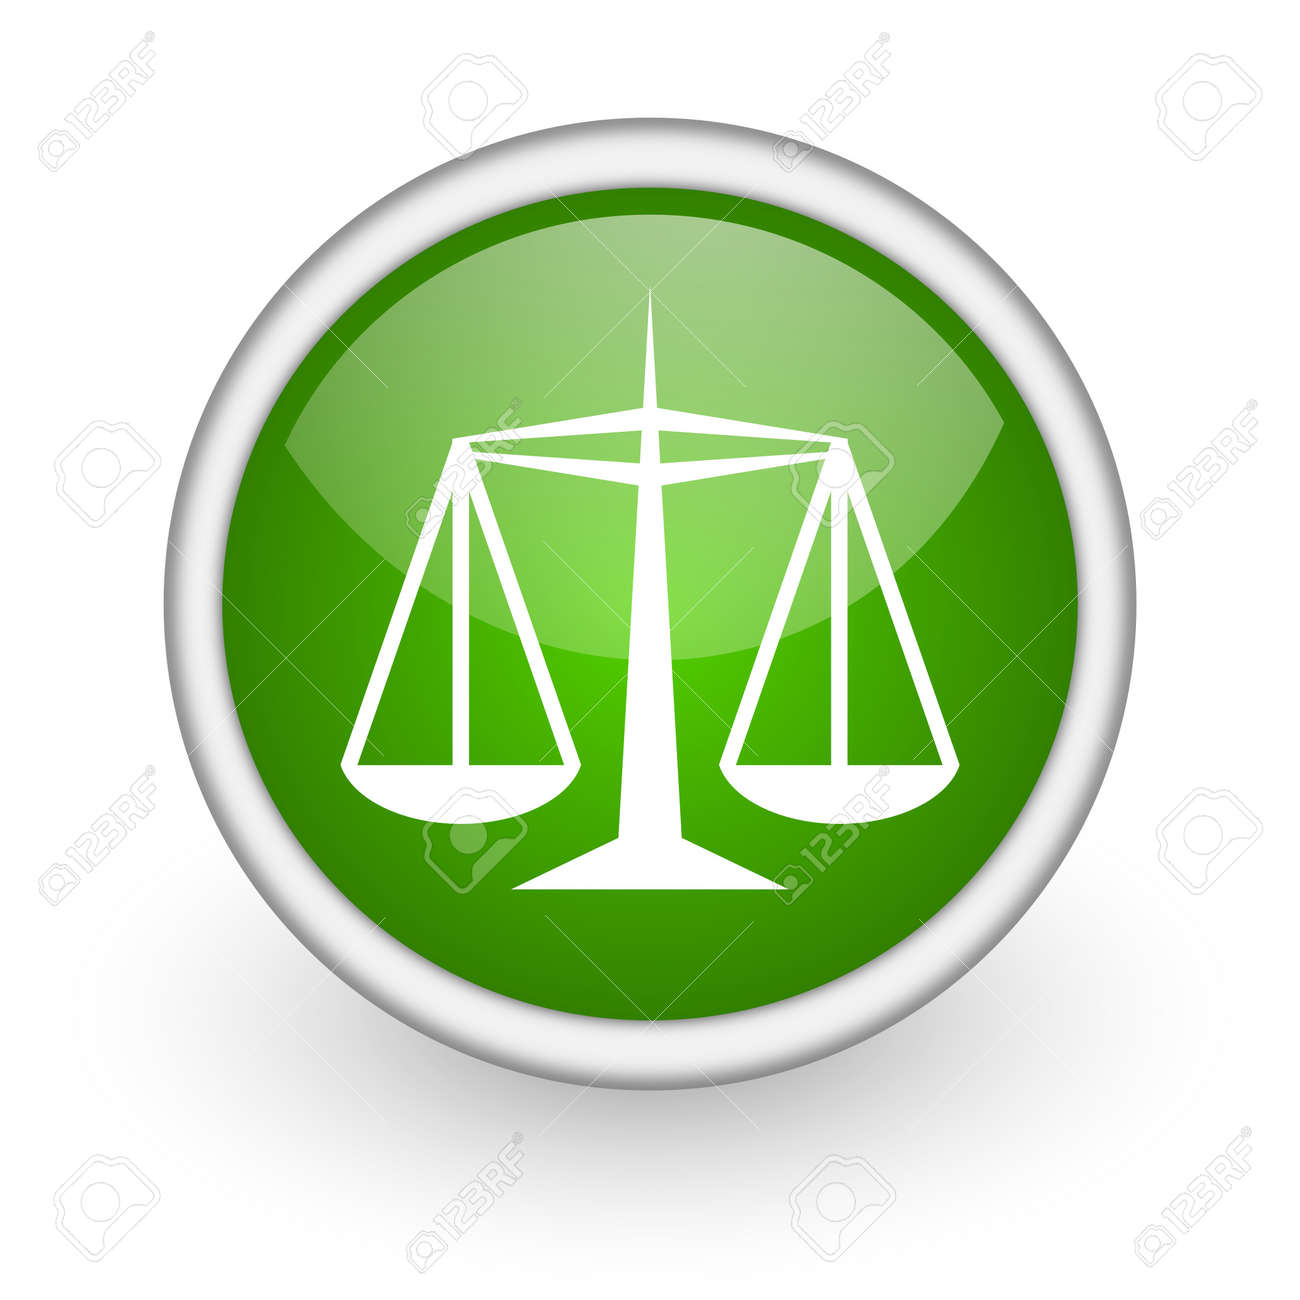 justice green circle glossy web icon on white background Stock Photo - 17648071